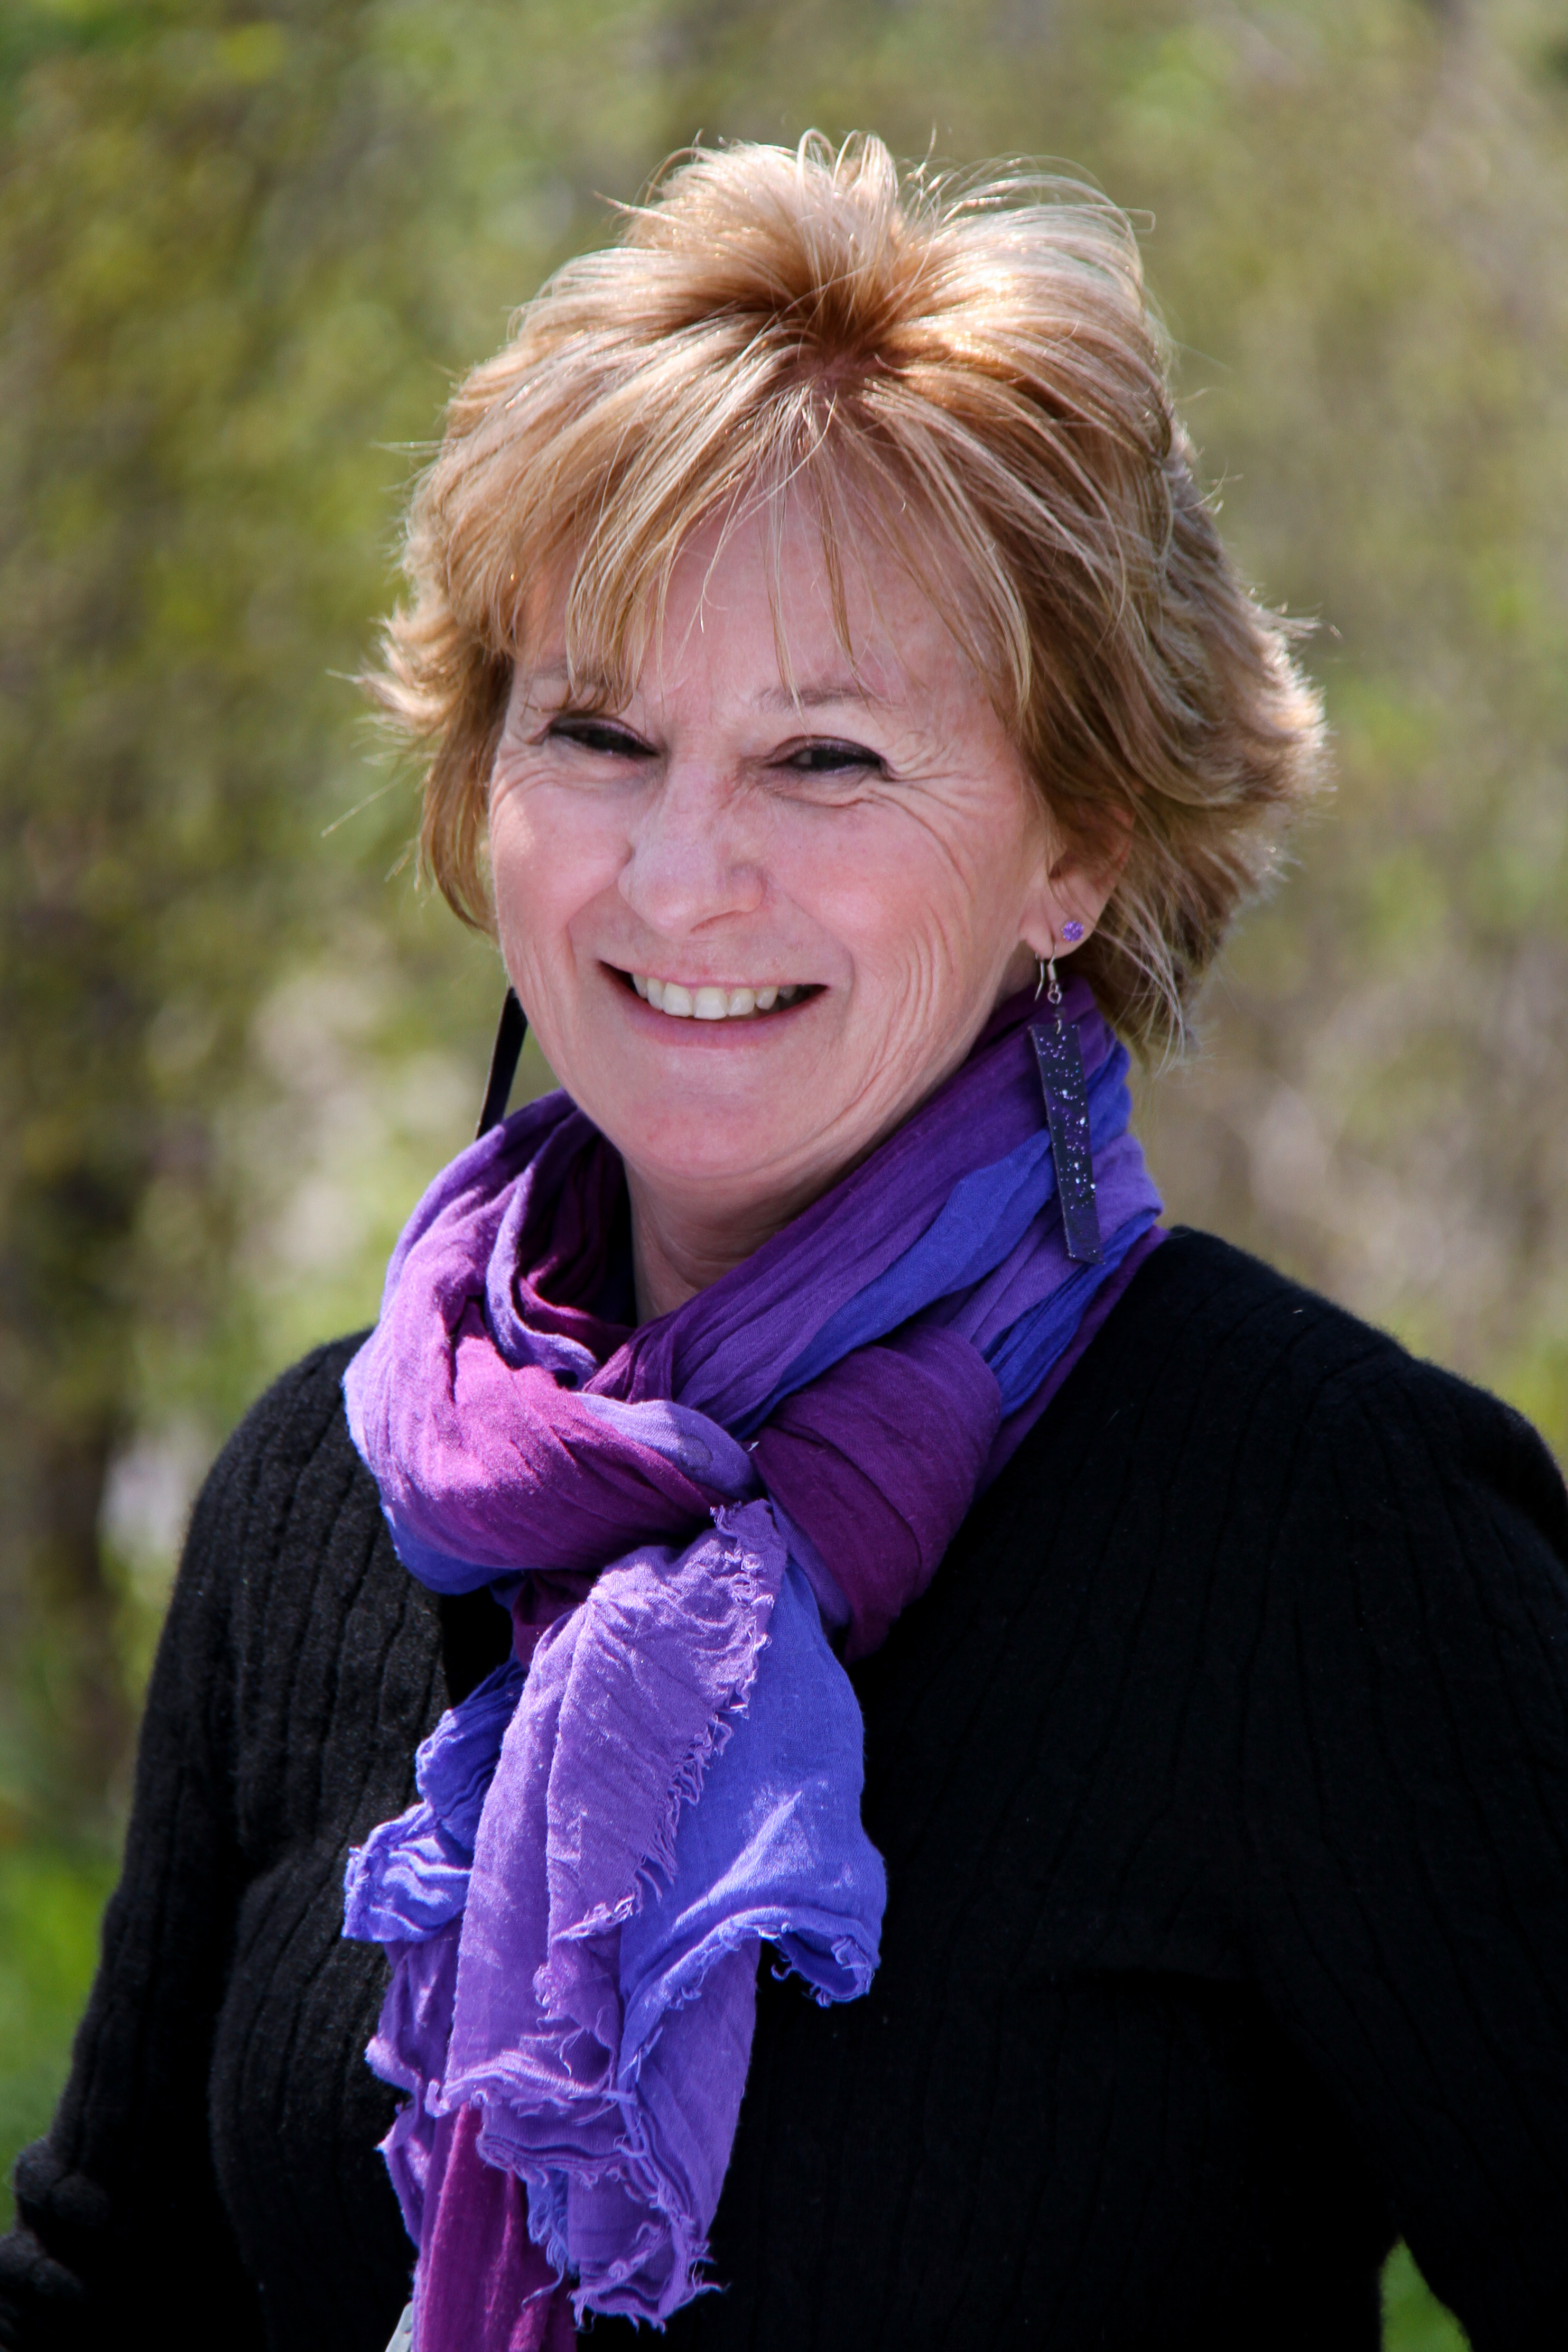 Peggy Rainville smiles at the camera on a sunny day in front of a background of blurry green trees and. She wears a black sweater and bright purple scarf and wears long, rectangular, dangling earrings.